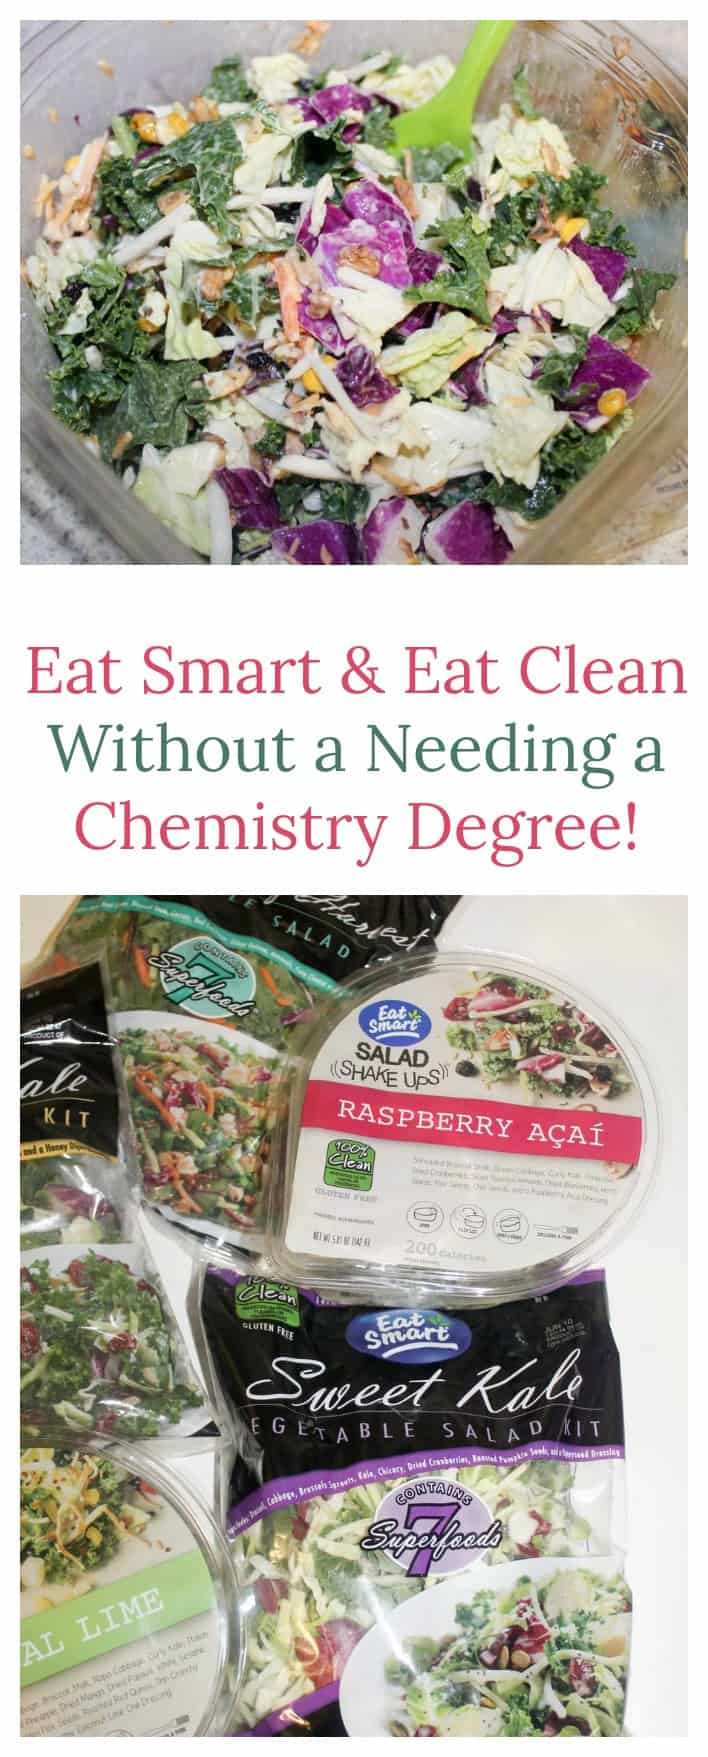 Eating healthy shouldn't be hard! With Eat Smart Salad Kits & their Eat Clean labels, it just got a ton easier! Check out our favorite flavors!